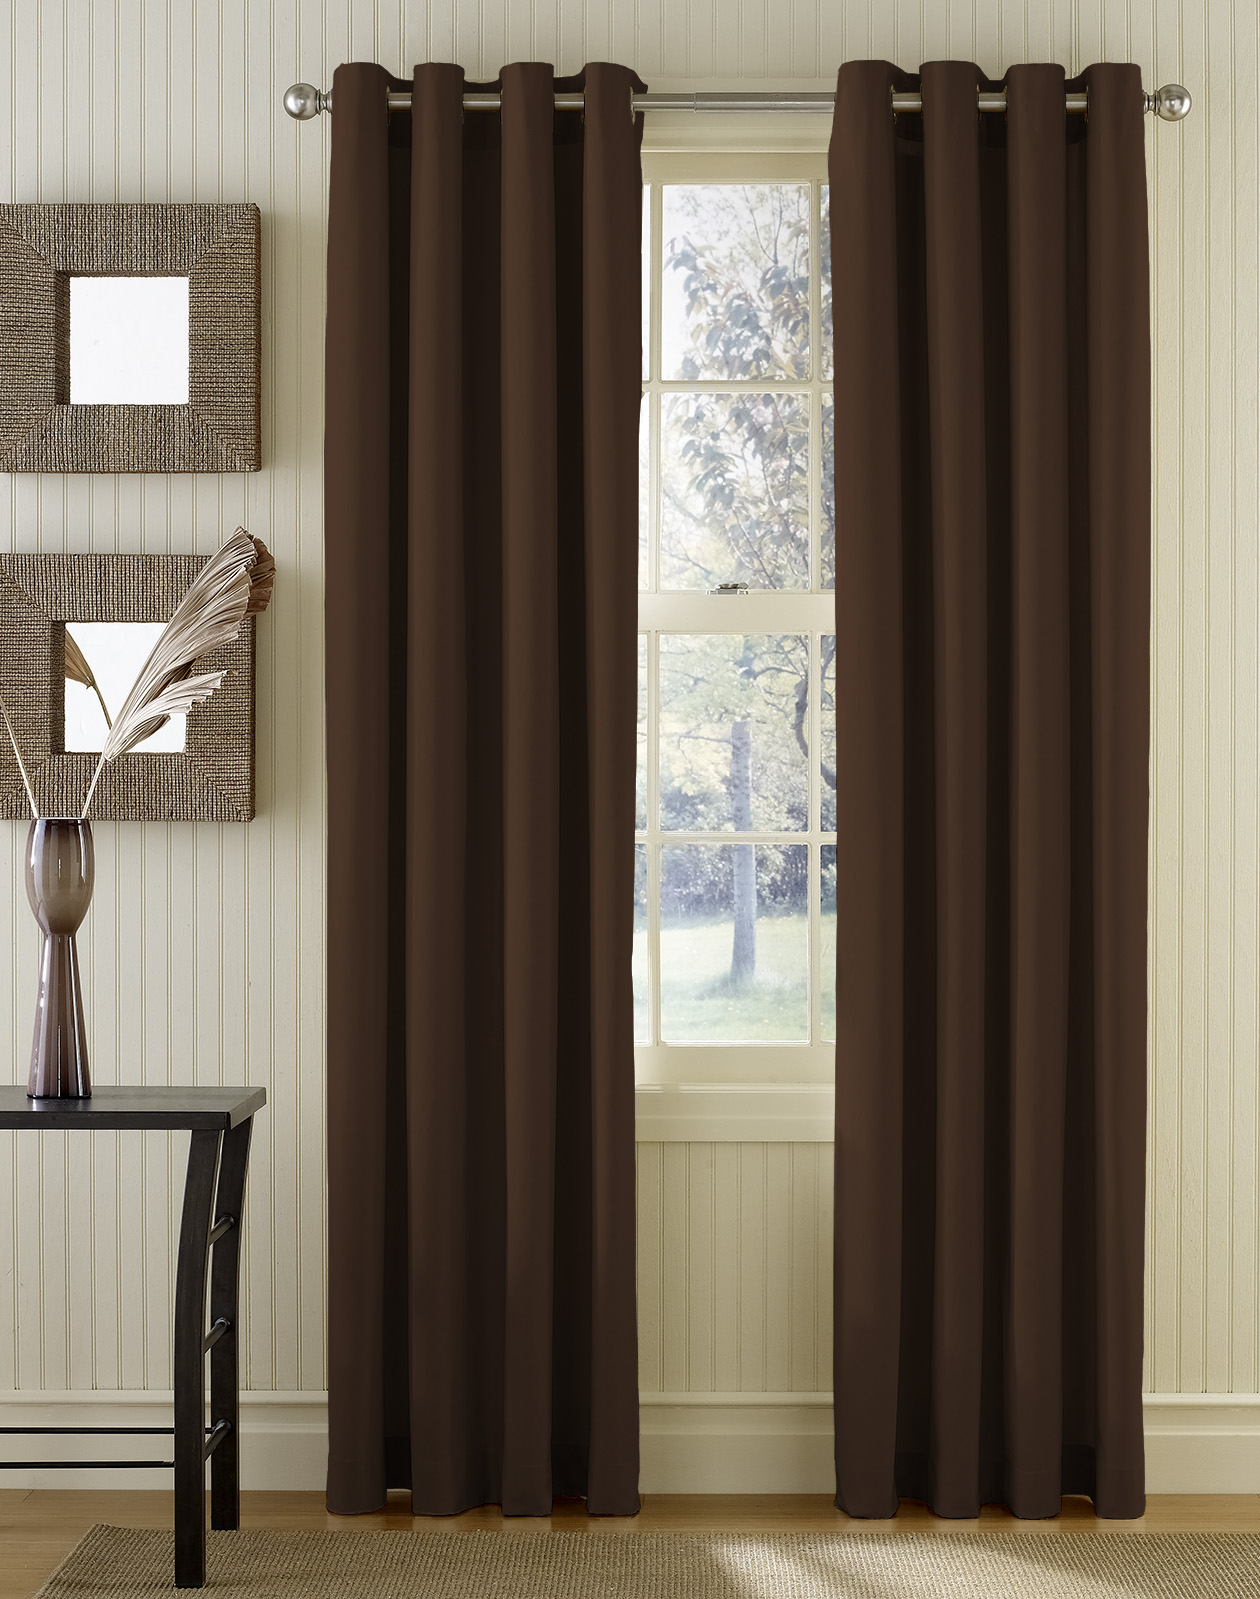 Window Curtain Design Ideas